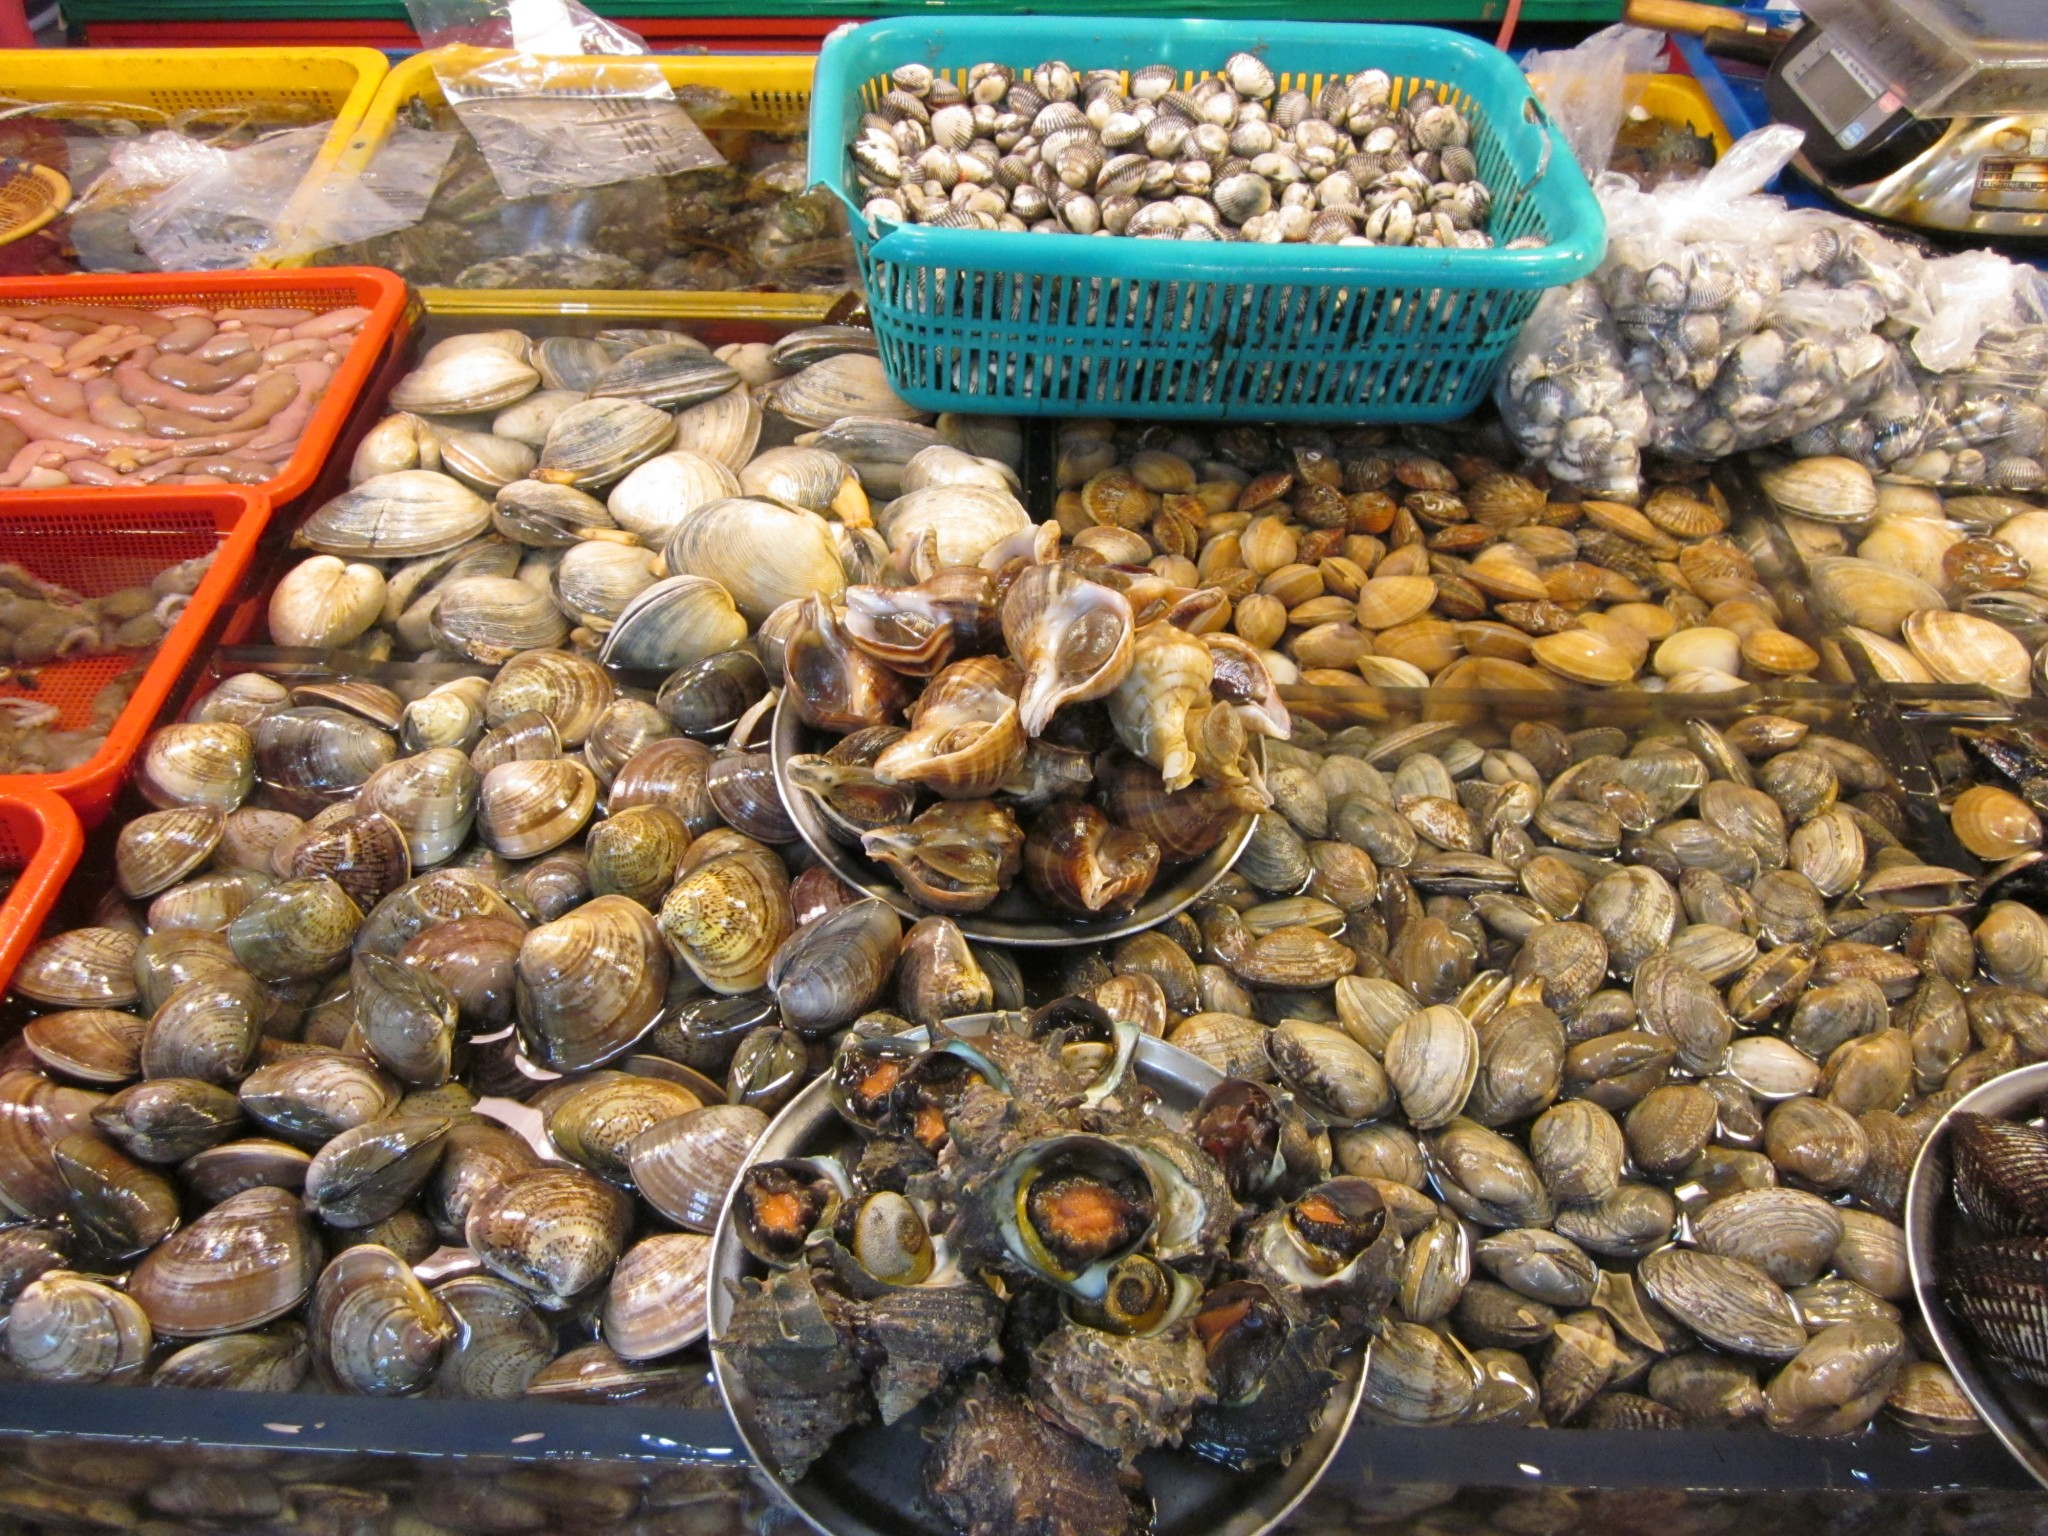 shellfish: oysters, clams & mussels - are they toxic or nutritious?